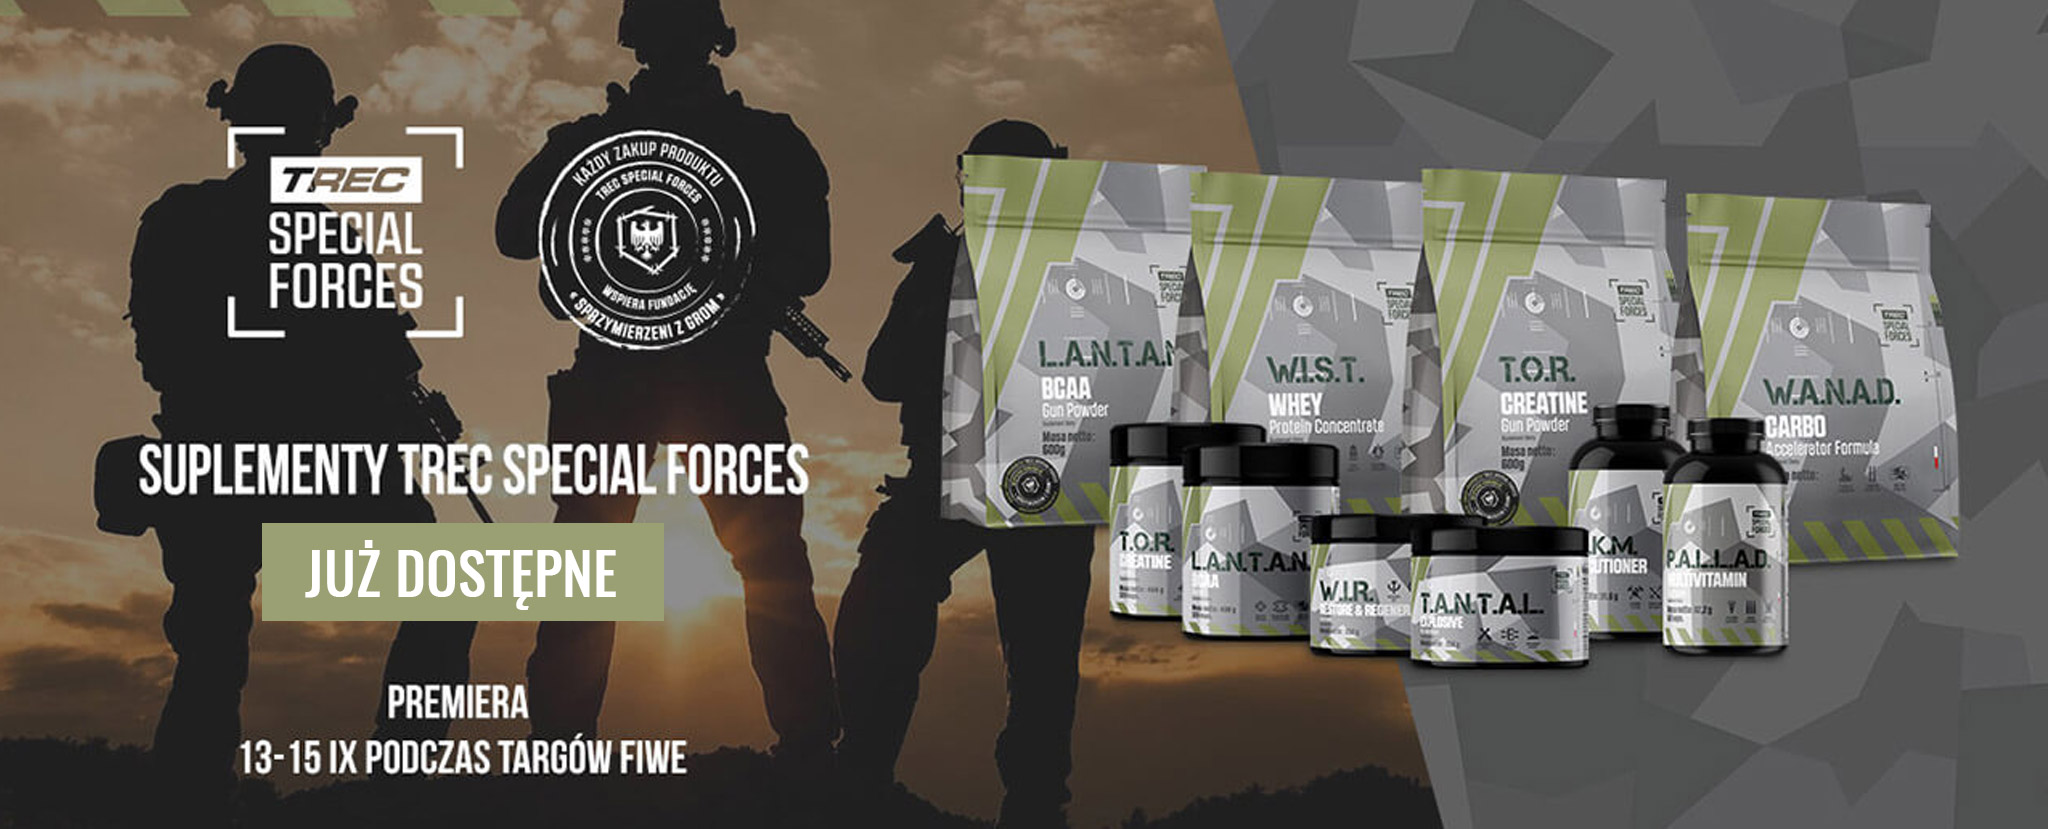 trec special forces banner home